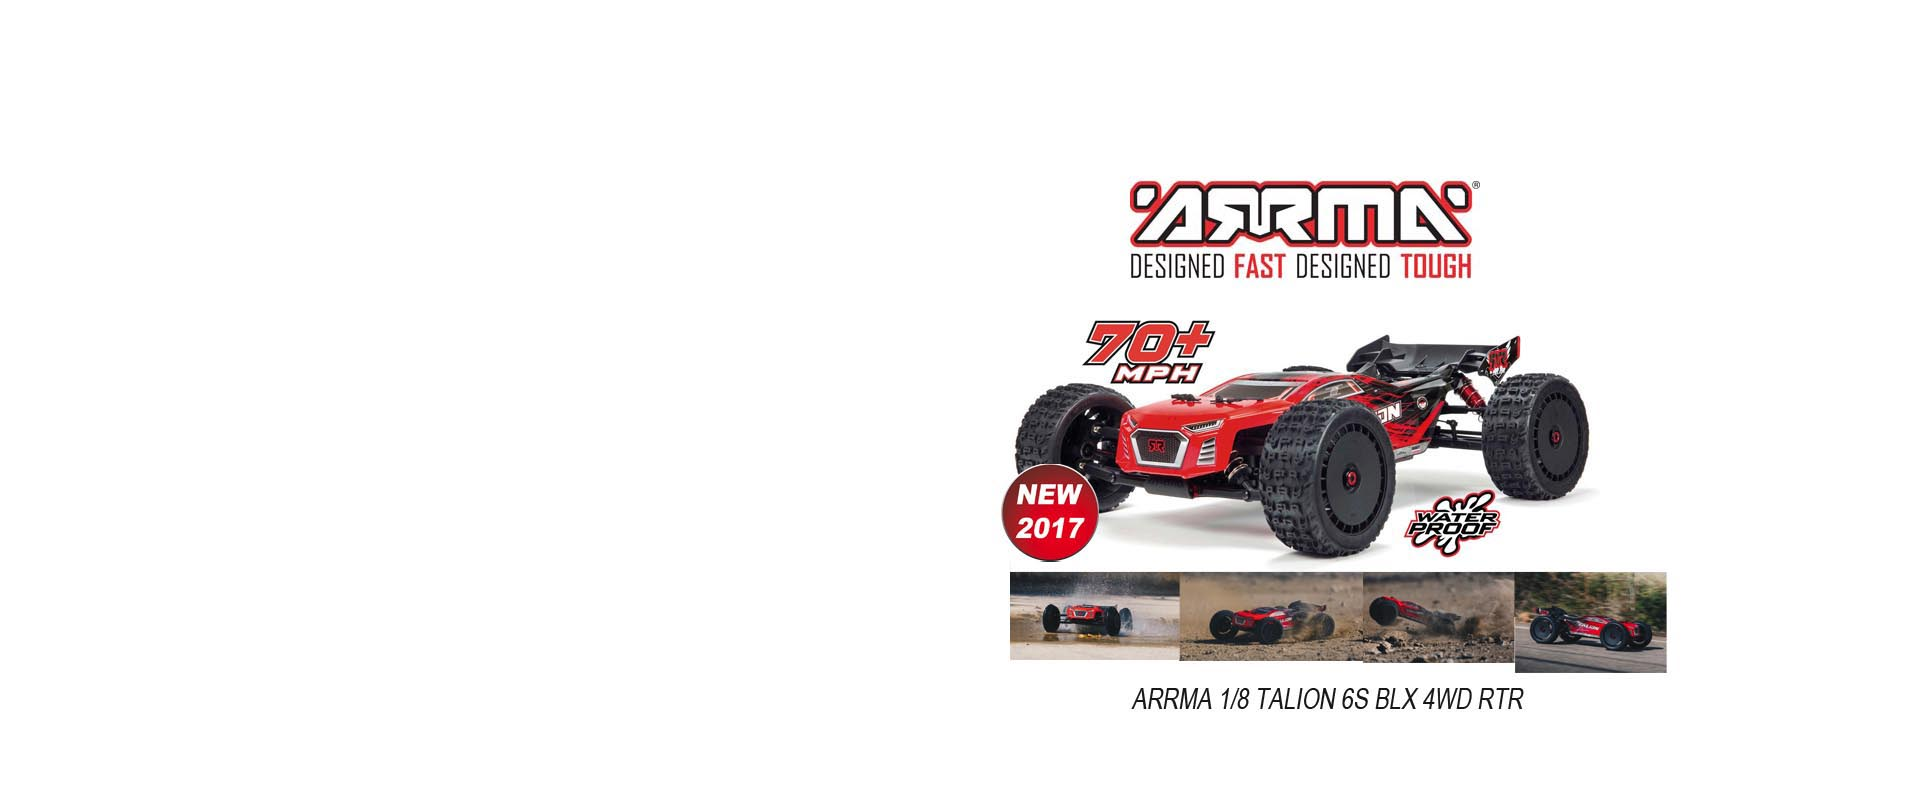 ARRMA 1/8 TALION 6S BLX Brushless 4WD RTR